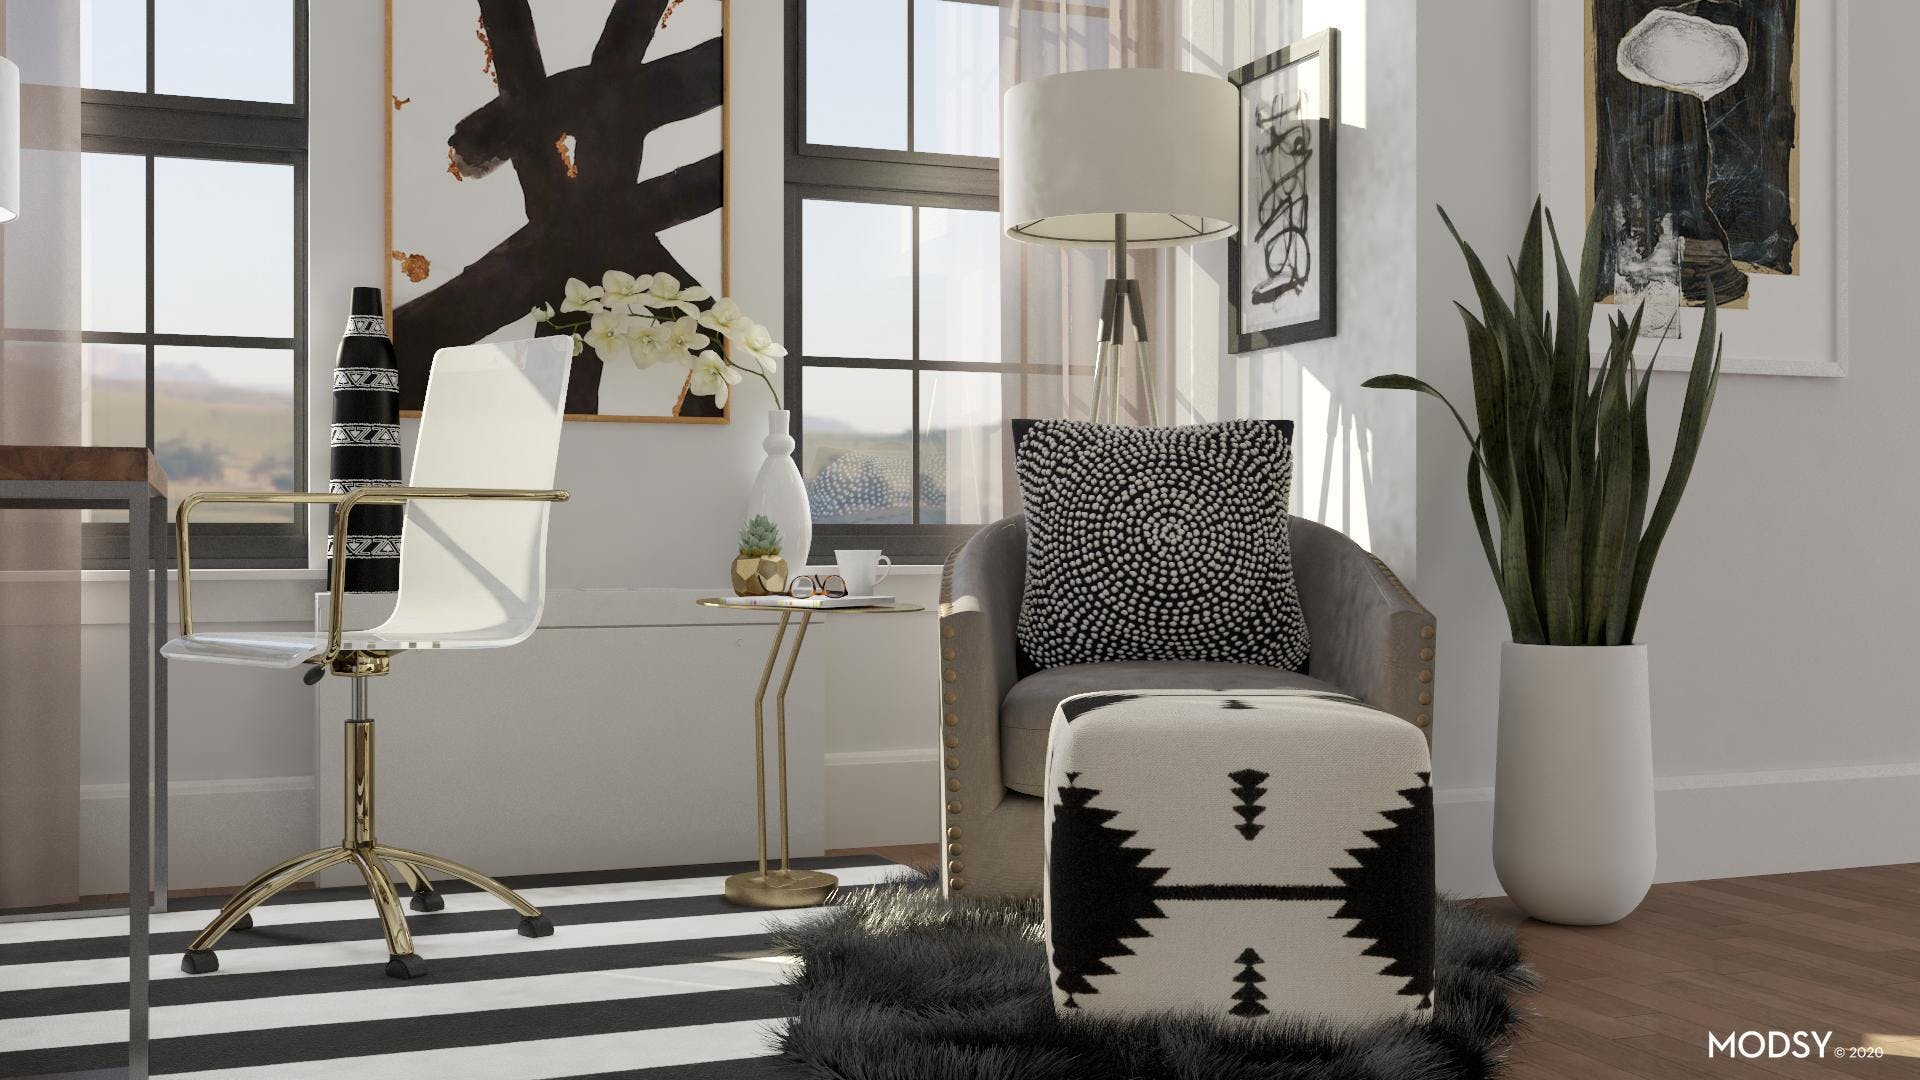 Patterns Come Together to Create a Serene Nook